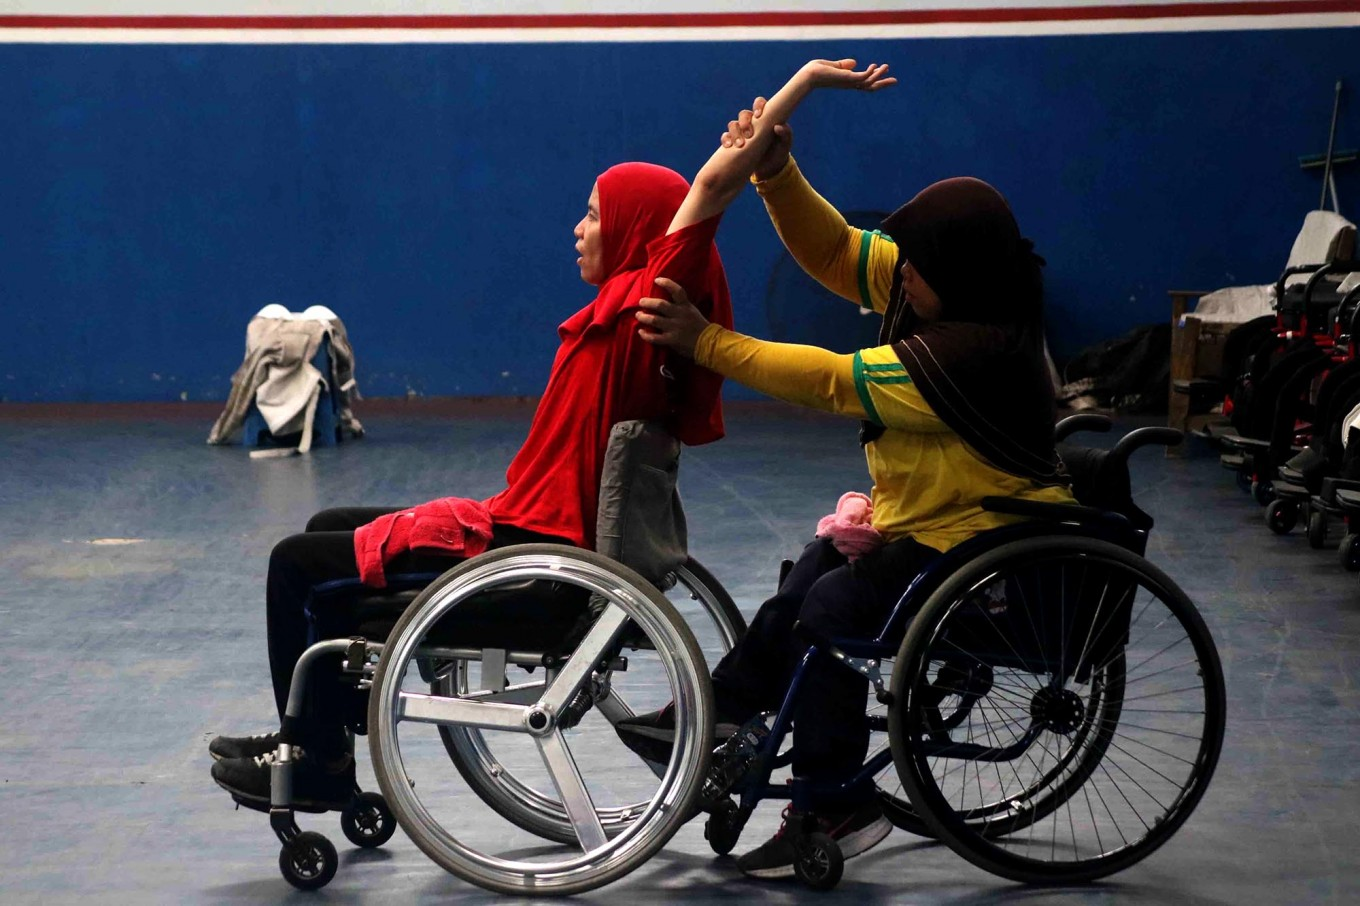 An athlete stretches, helped by her teammate, before the start of a training session. JP/Maksum Nur Fauzan